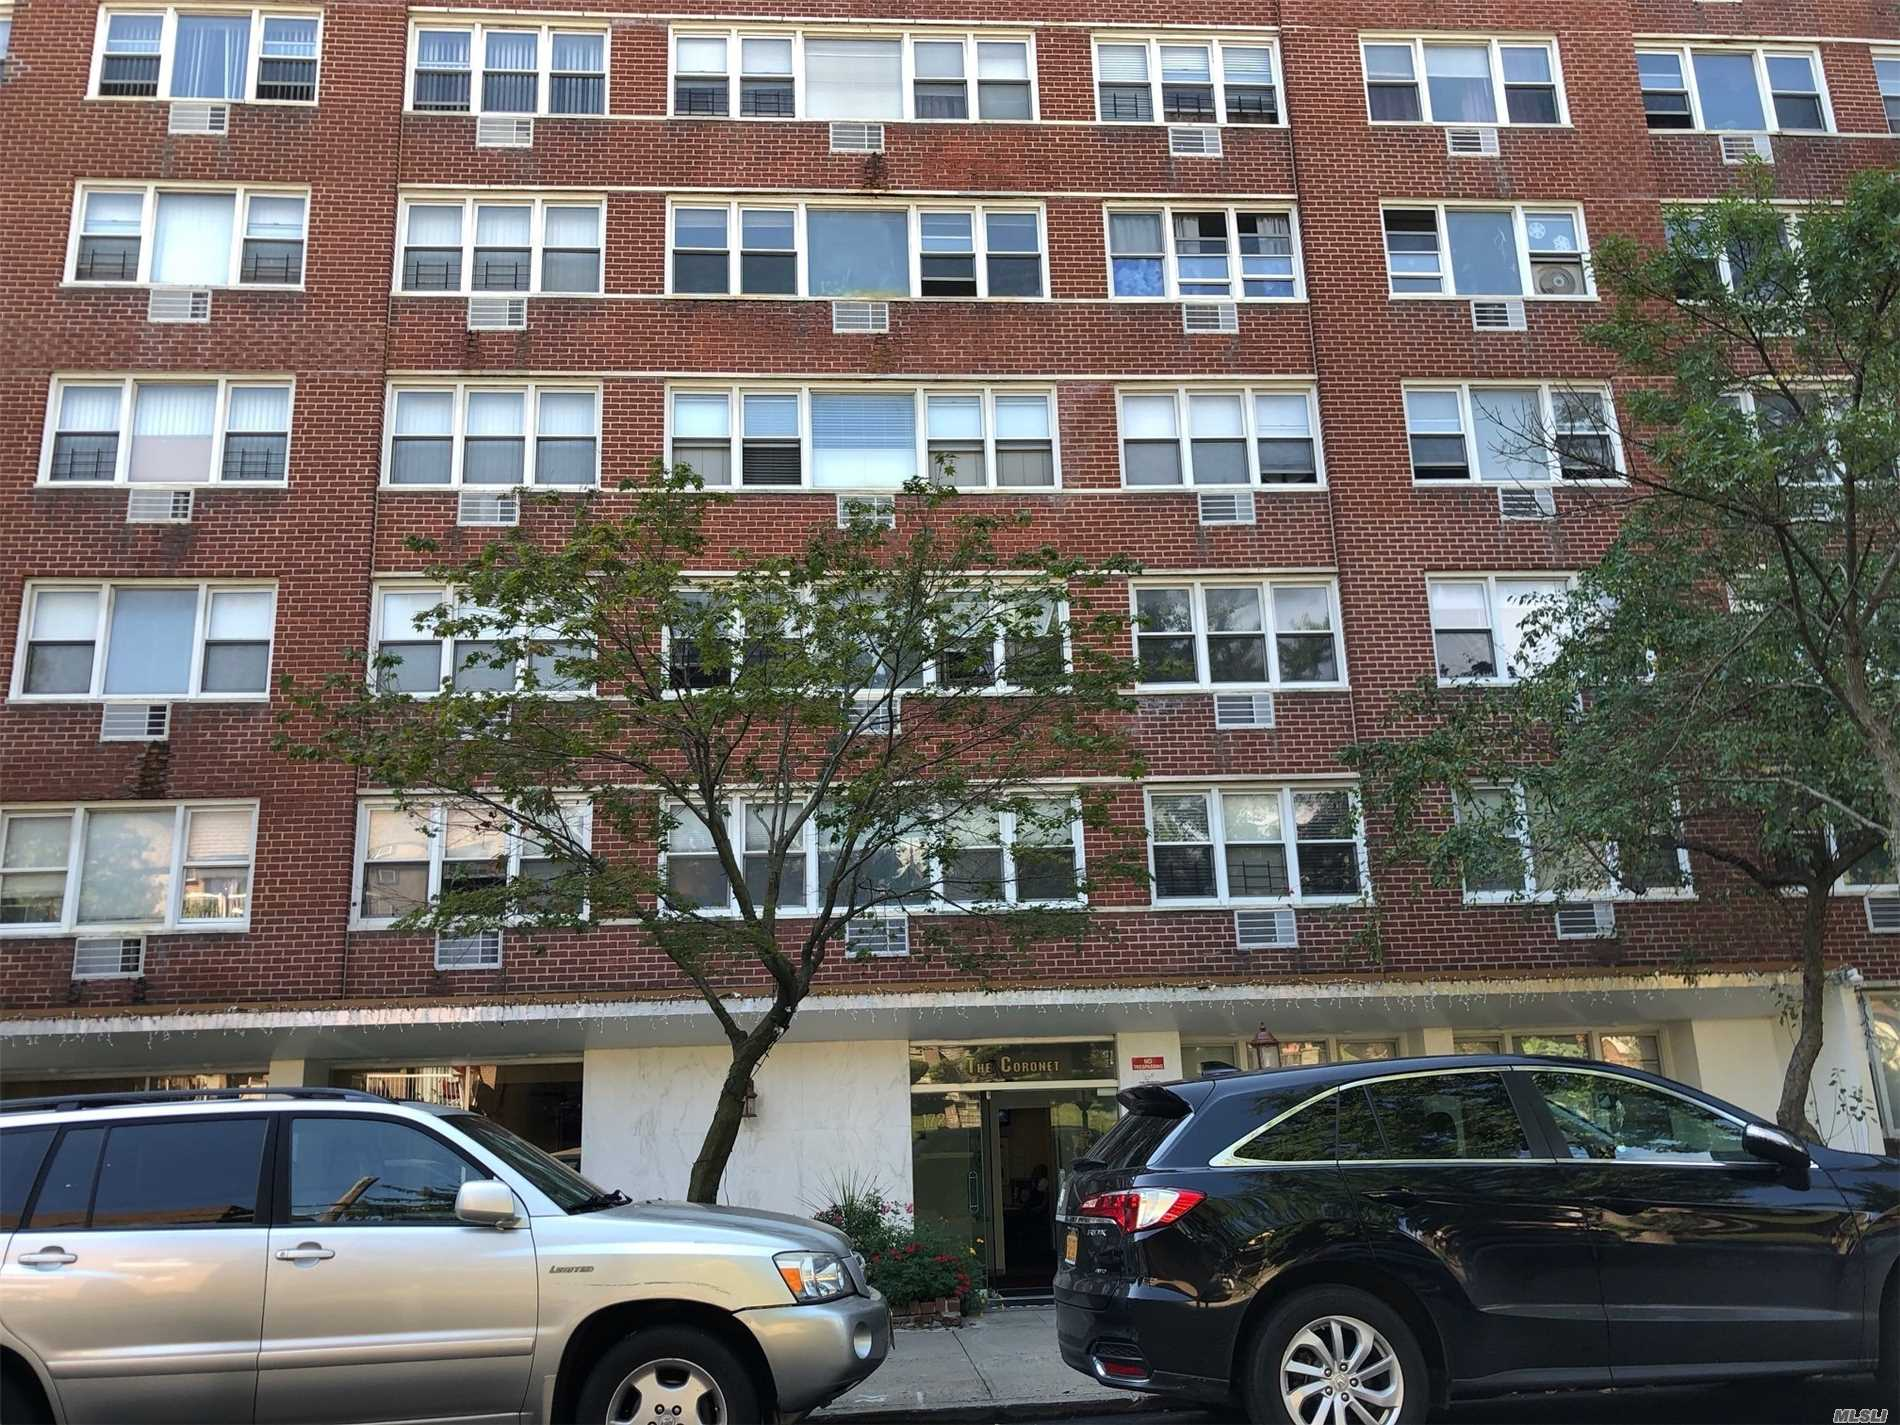 Large Sun Drenched 1 Bedroom With Windows In Every Room. Concerte Floors And Ceilings, Doorman Builing, Full Time Super, Laundry Room And Onsite Parking. Located On A Quiet Block, Close To Shops, Restaurants And All. Blocks Away To F Train.